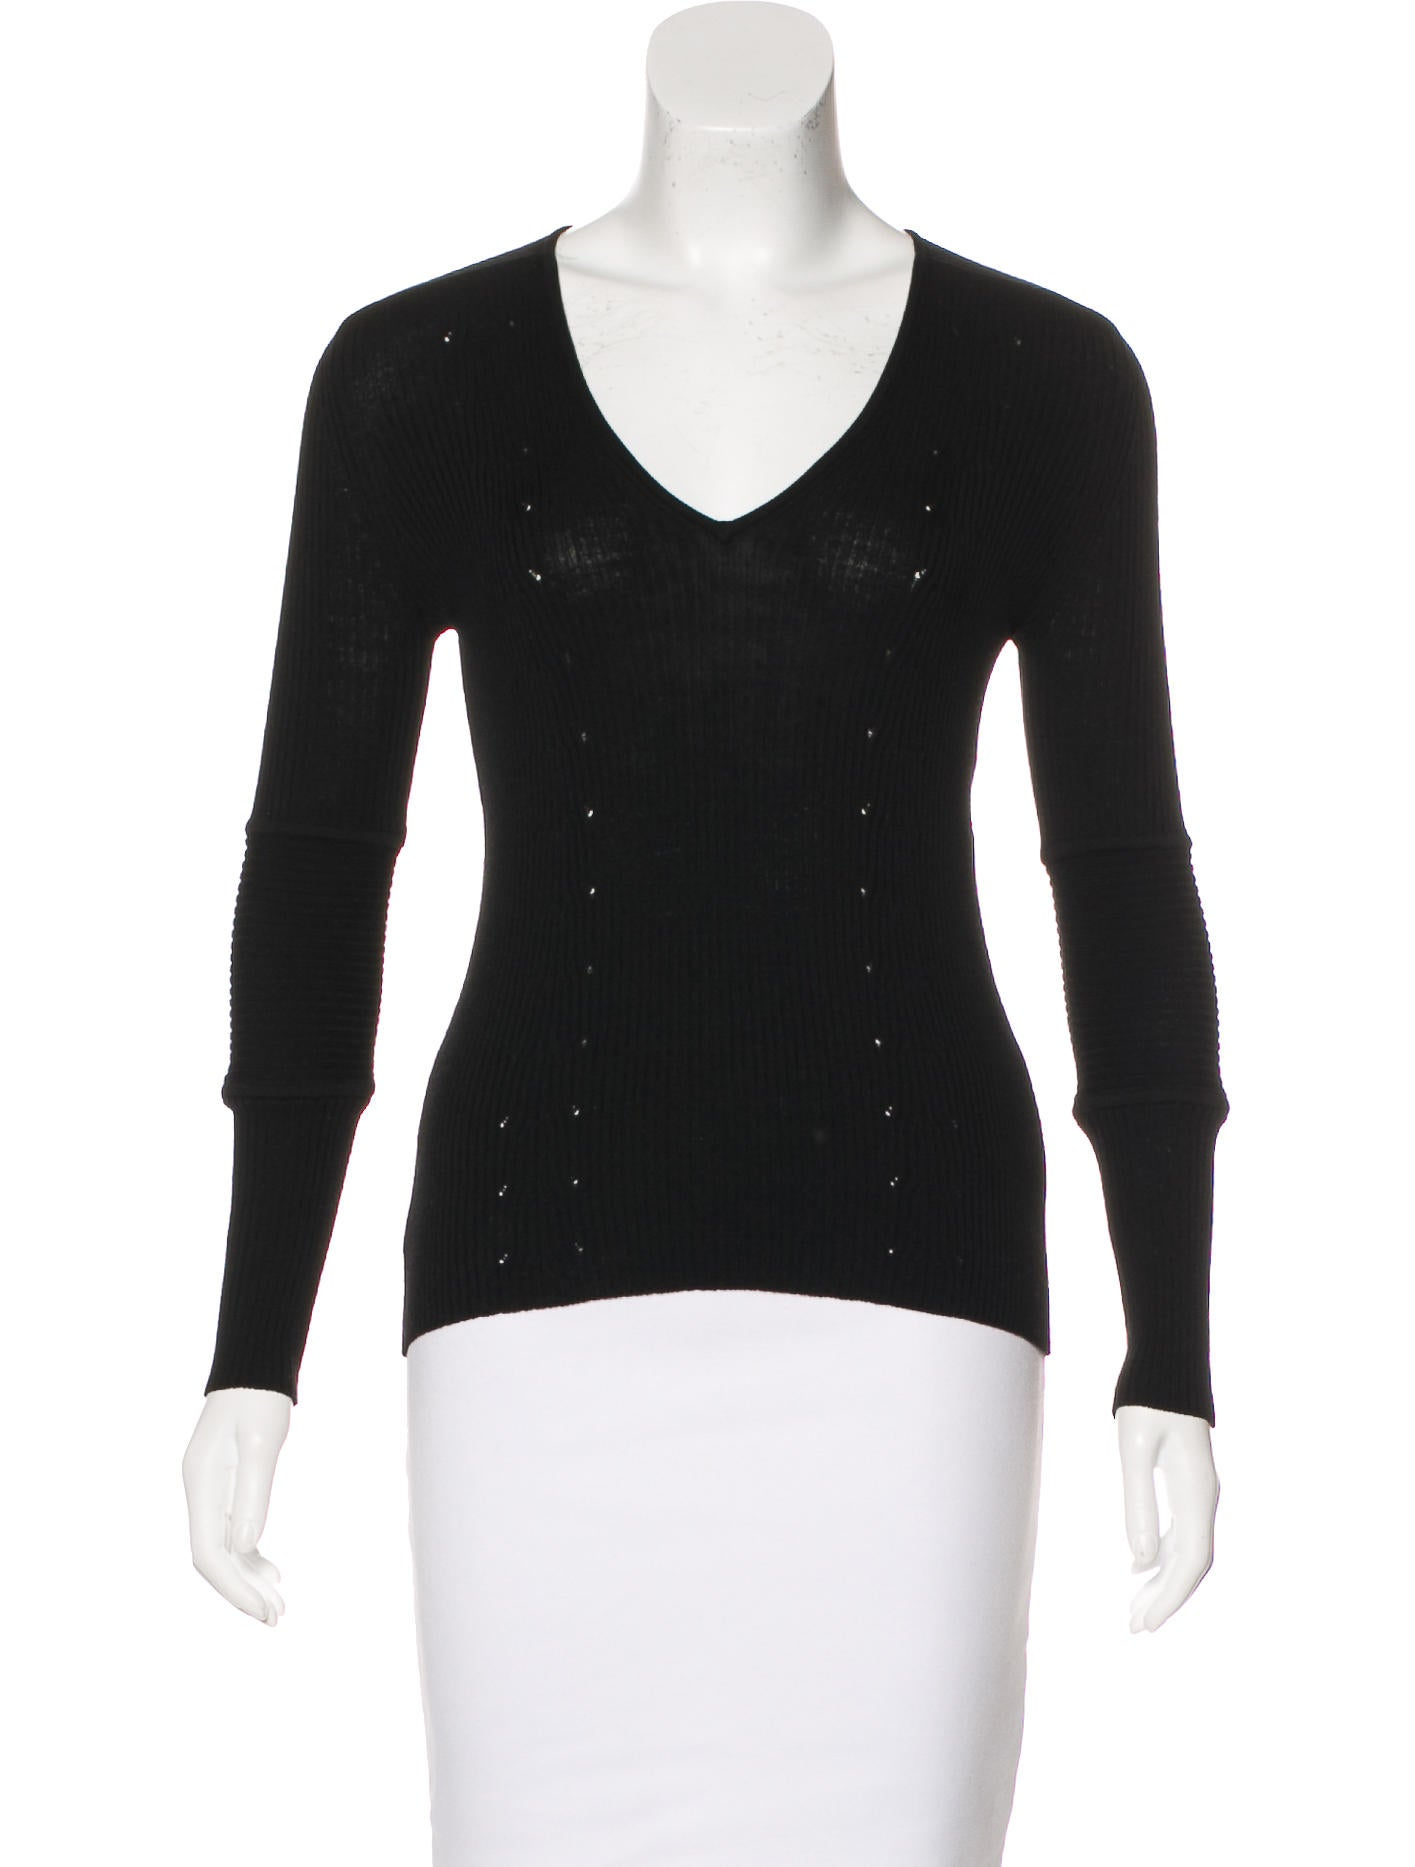 Gucci wool knit top clothing guc166967 the realreal for Best wool shirt jackets